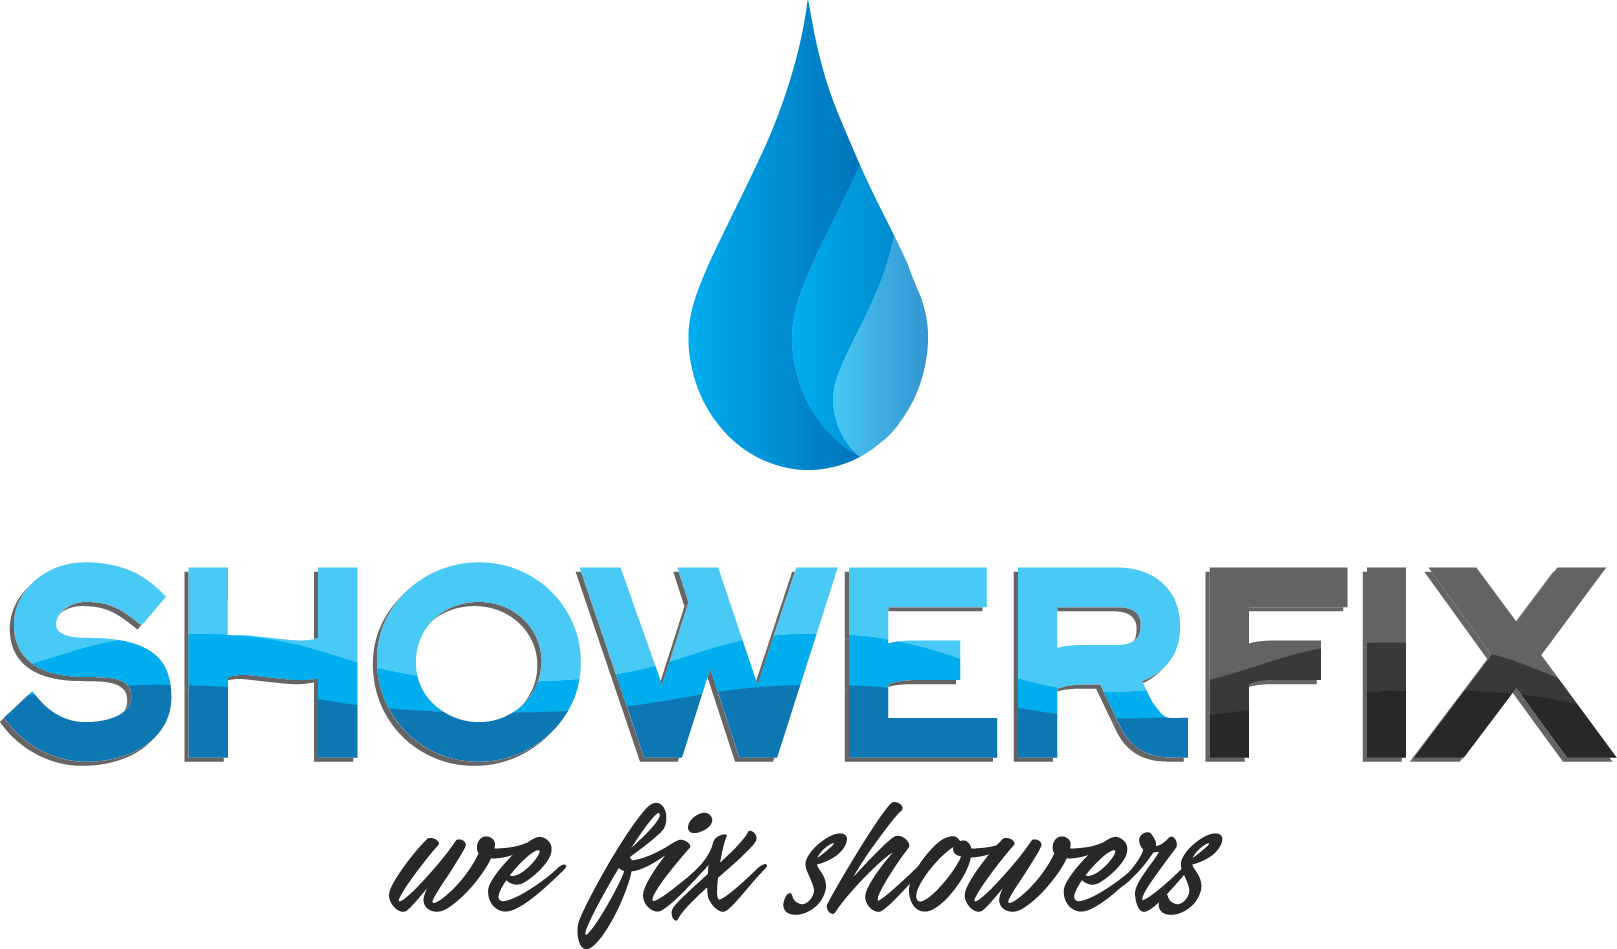 Shower door installers Auckland, shower glass repairs North Shore